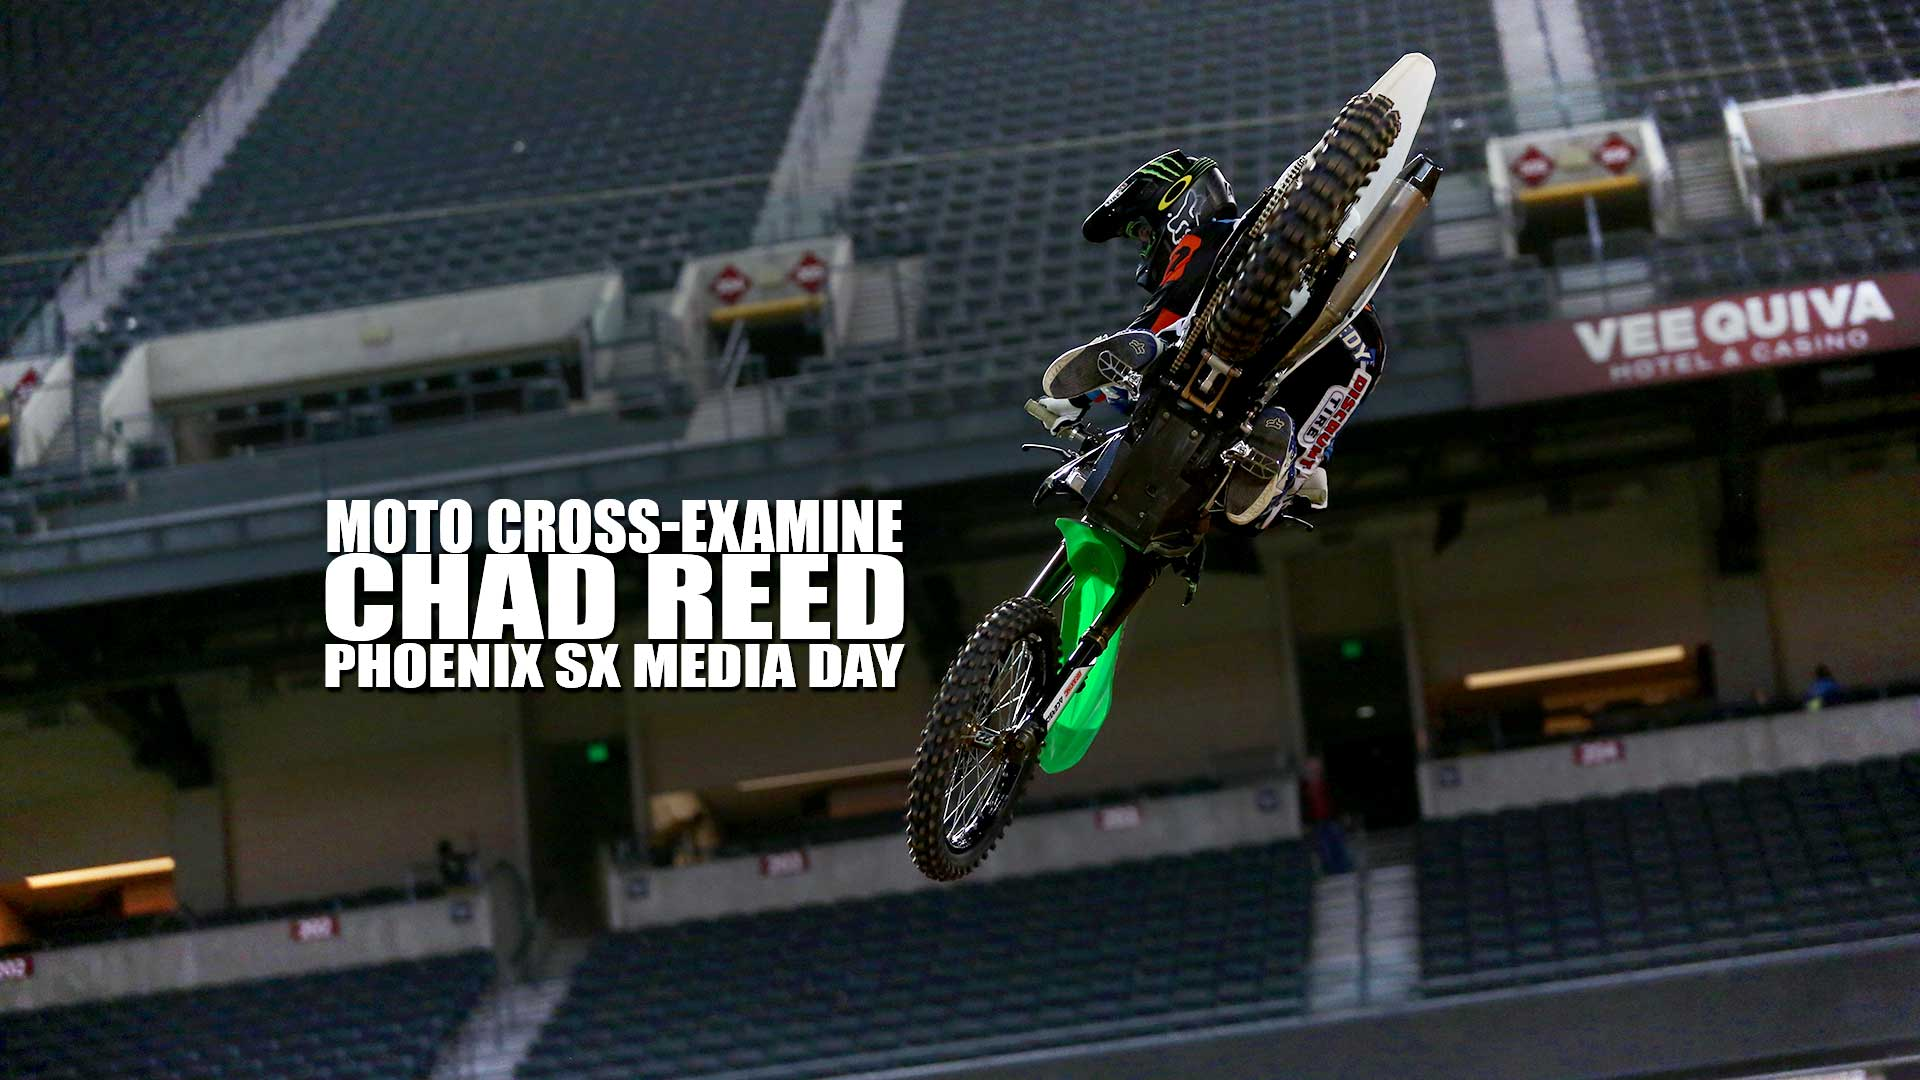 Moto Cross-Examine: Chad Reed Phoenix SX Media Day